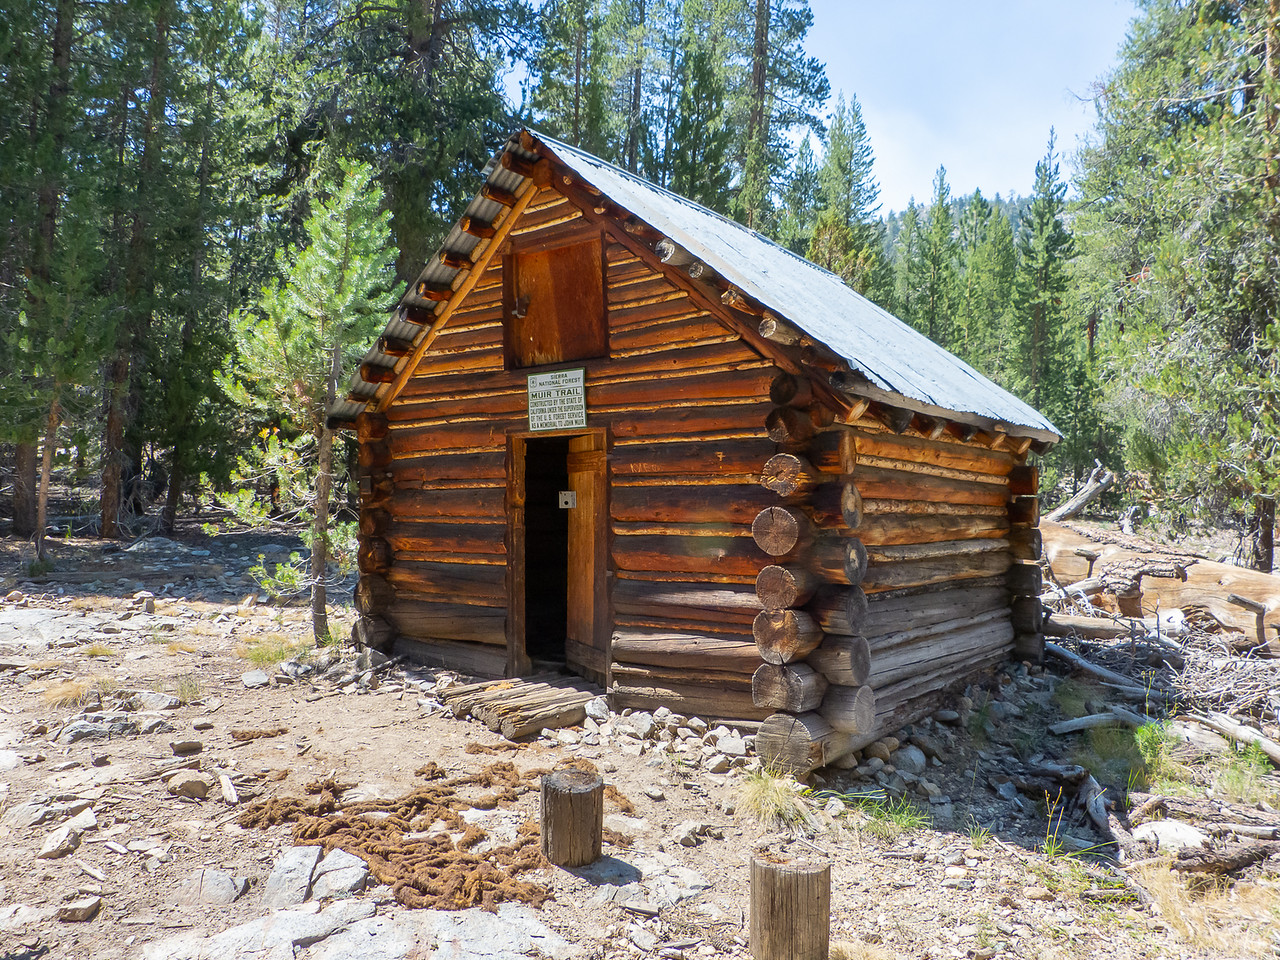 The Muir Trail Cabin.  It's on the John Muir Trail, about 1 mile north of the Piute Creek Bridge.